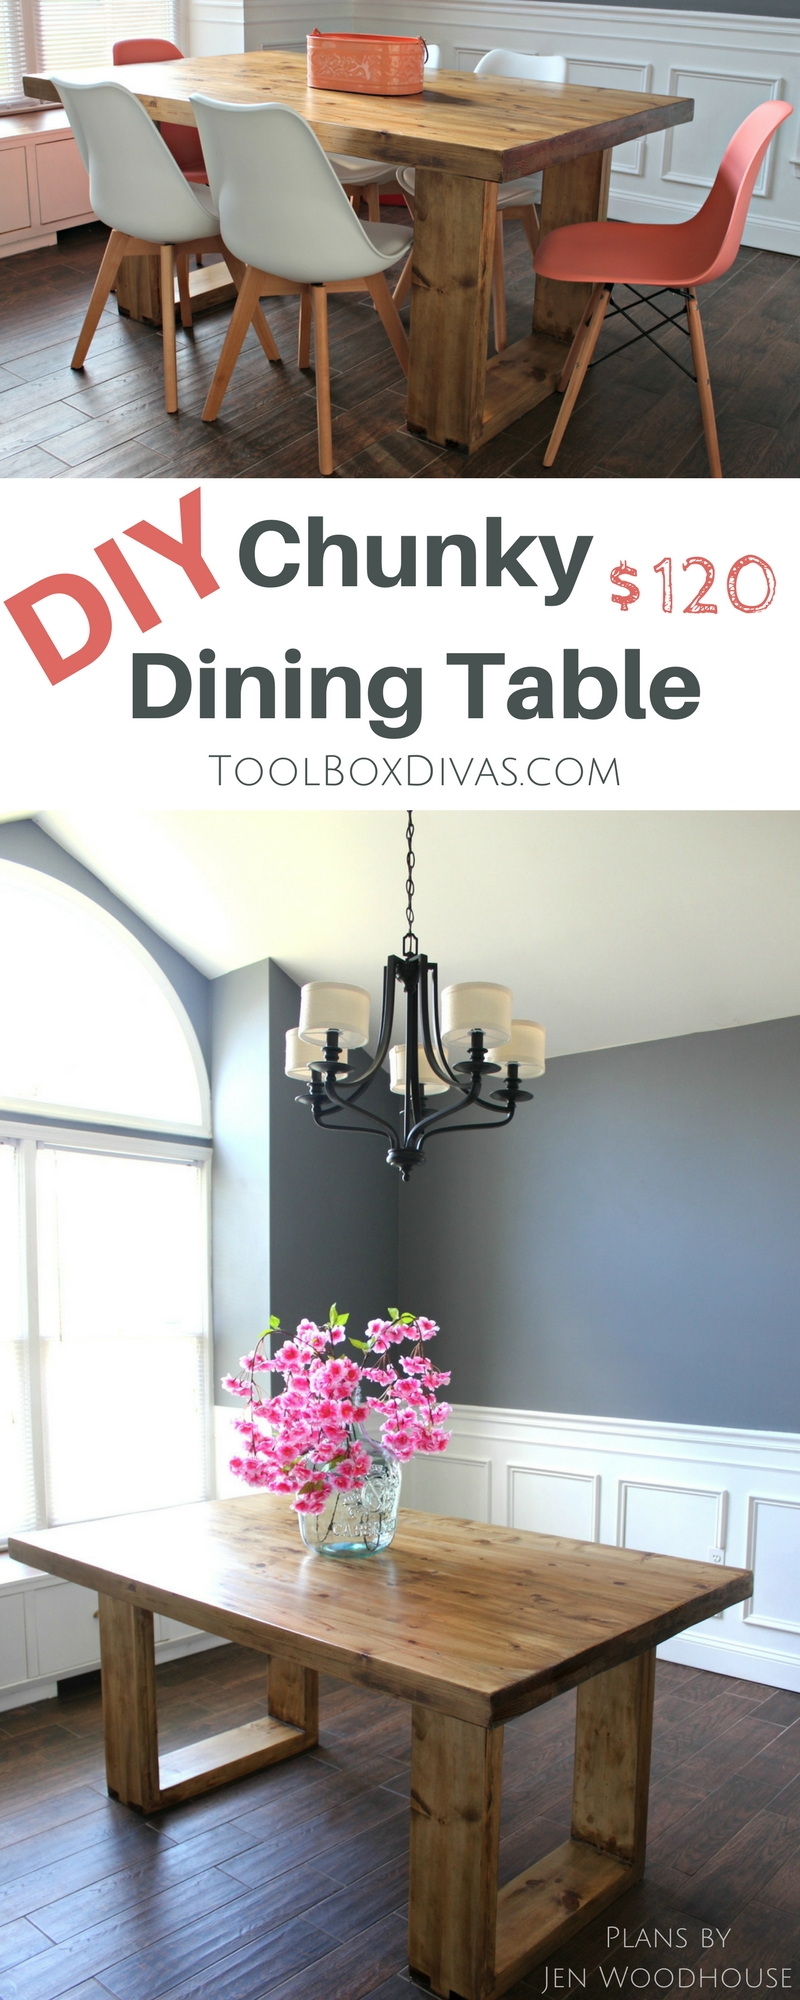 DIY modern dining table. Inexpensive with and budget friendly.  Get the look of high end furniture store for less. @ToolboxDivas #Toolboxdivas #Doityourself #table #Diningtable